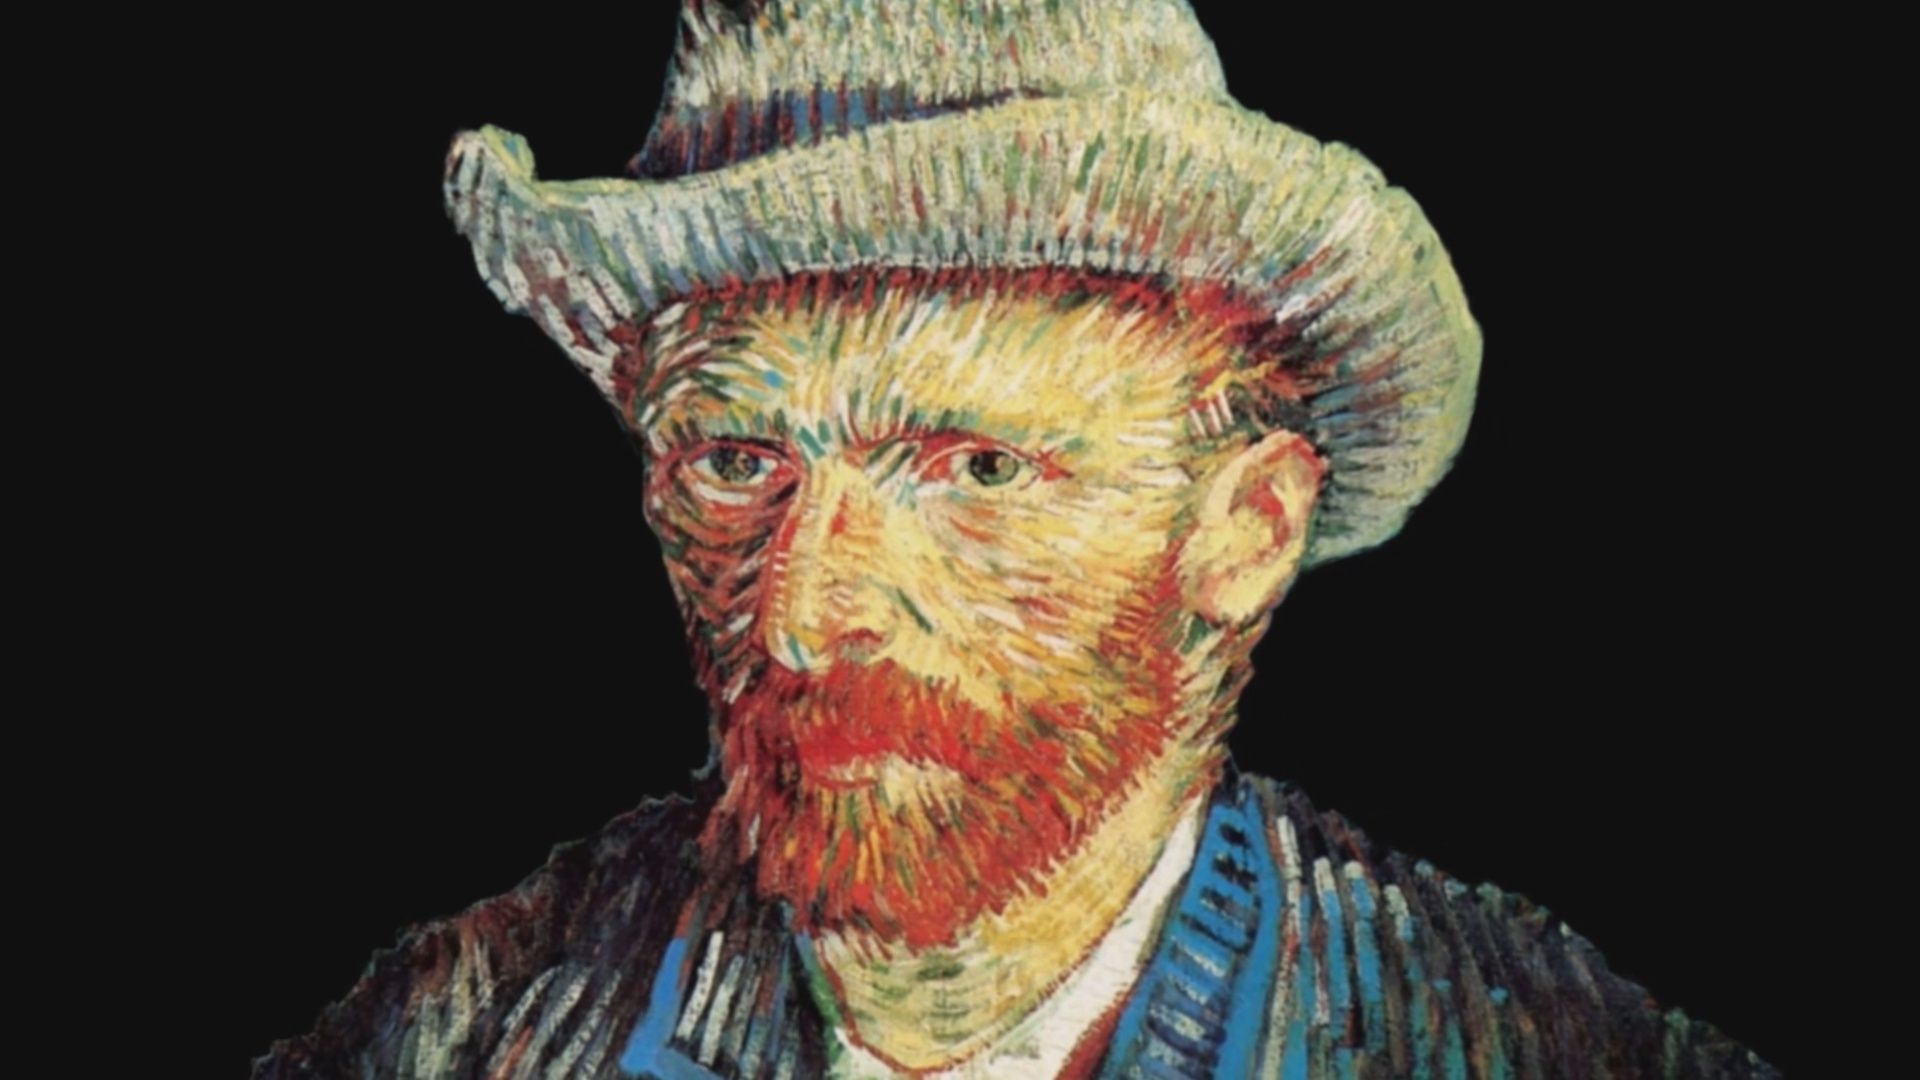 Hopefully Can Dive Into The Imagination Of Vincent Van Gogh Javierana Utvr